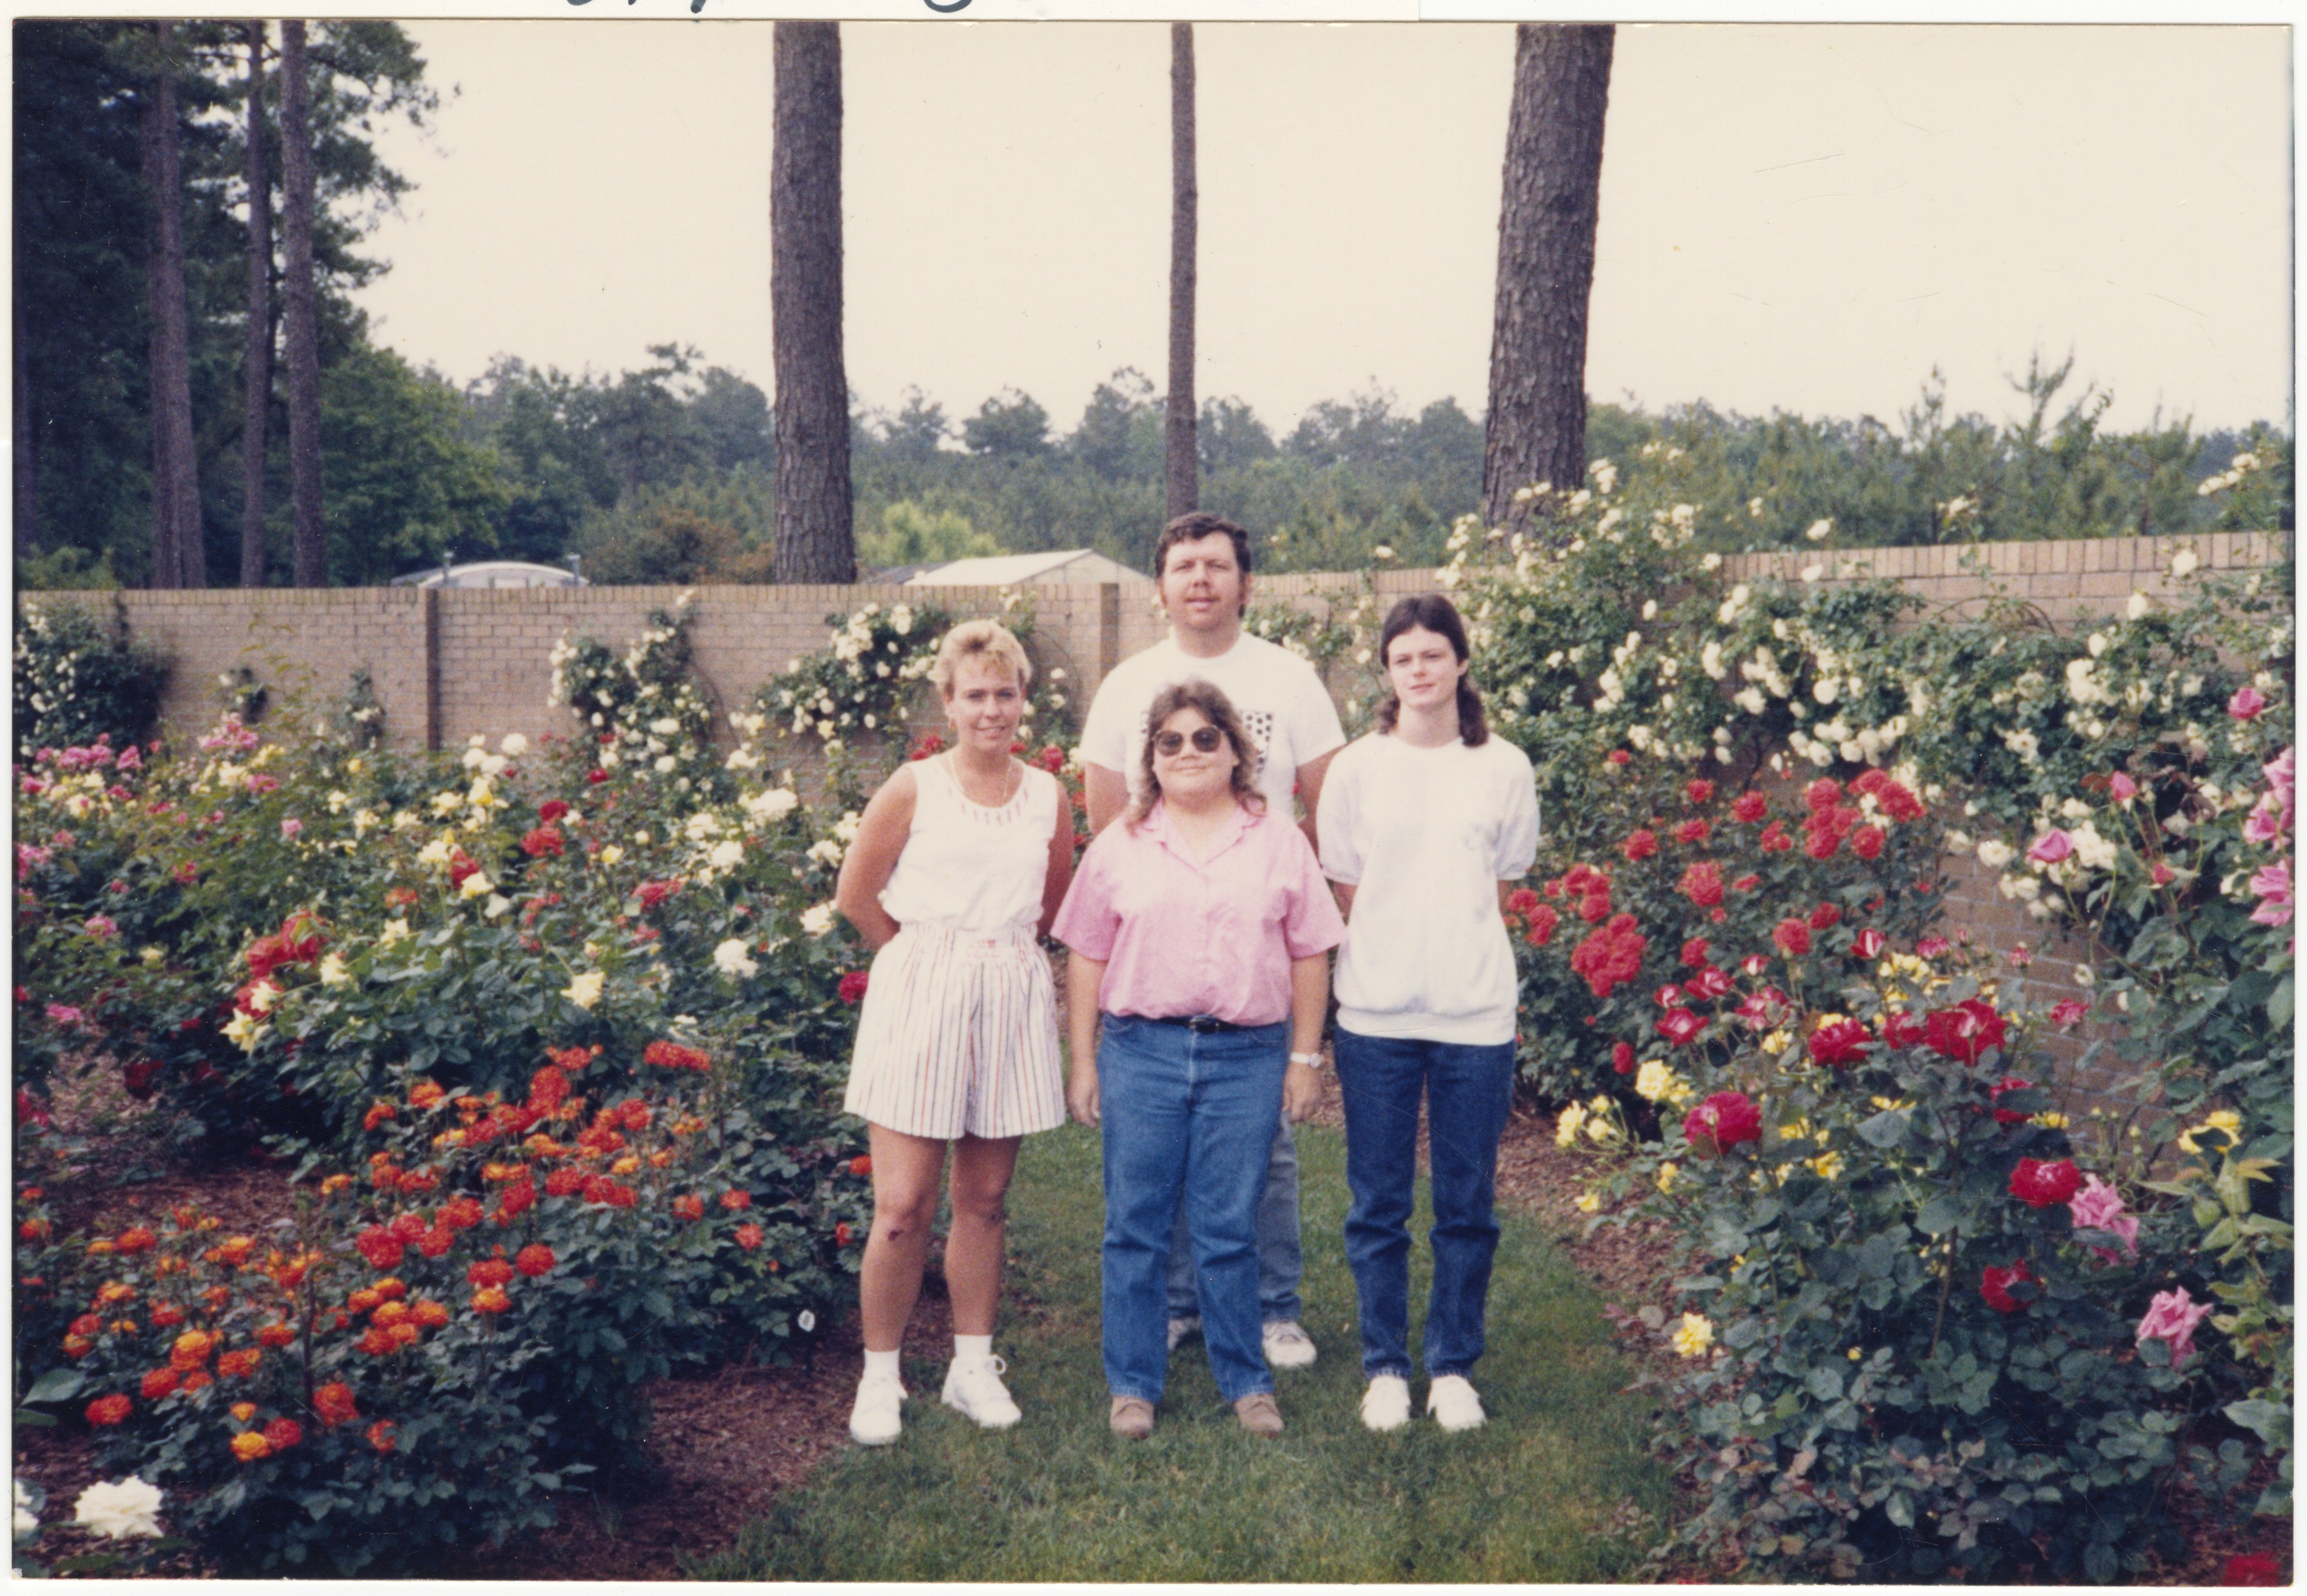 Marshall Casey, Carole Lawerence, Angela Batts, and Becky Turnage, from the staff of the 1989 Retrospect Yearbook